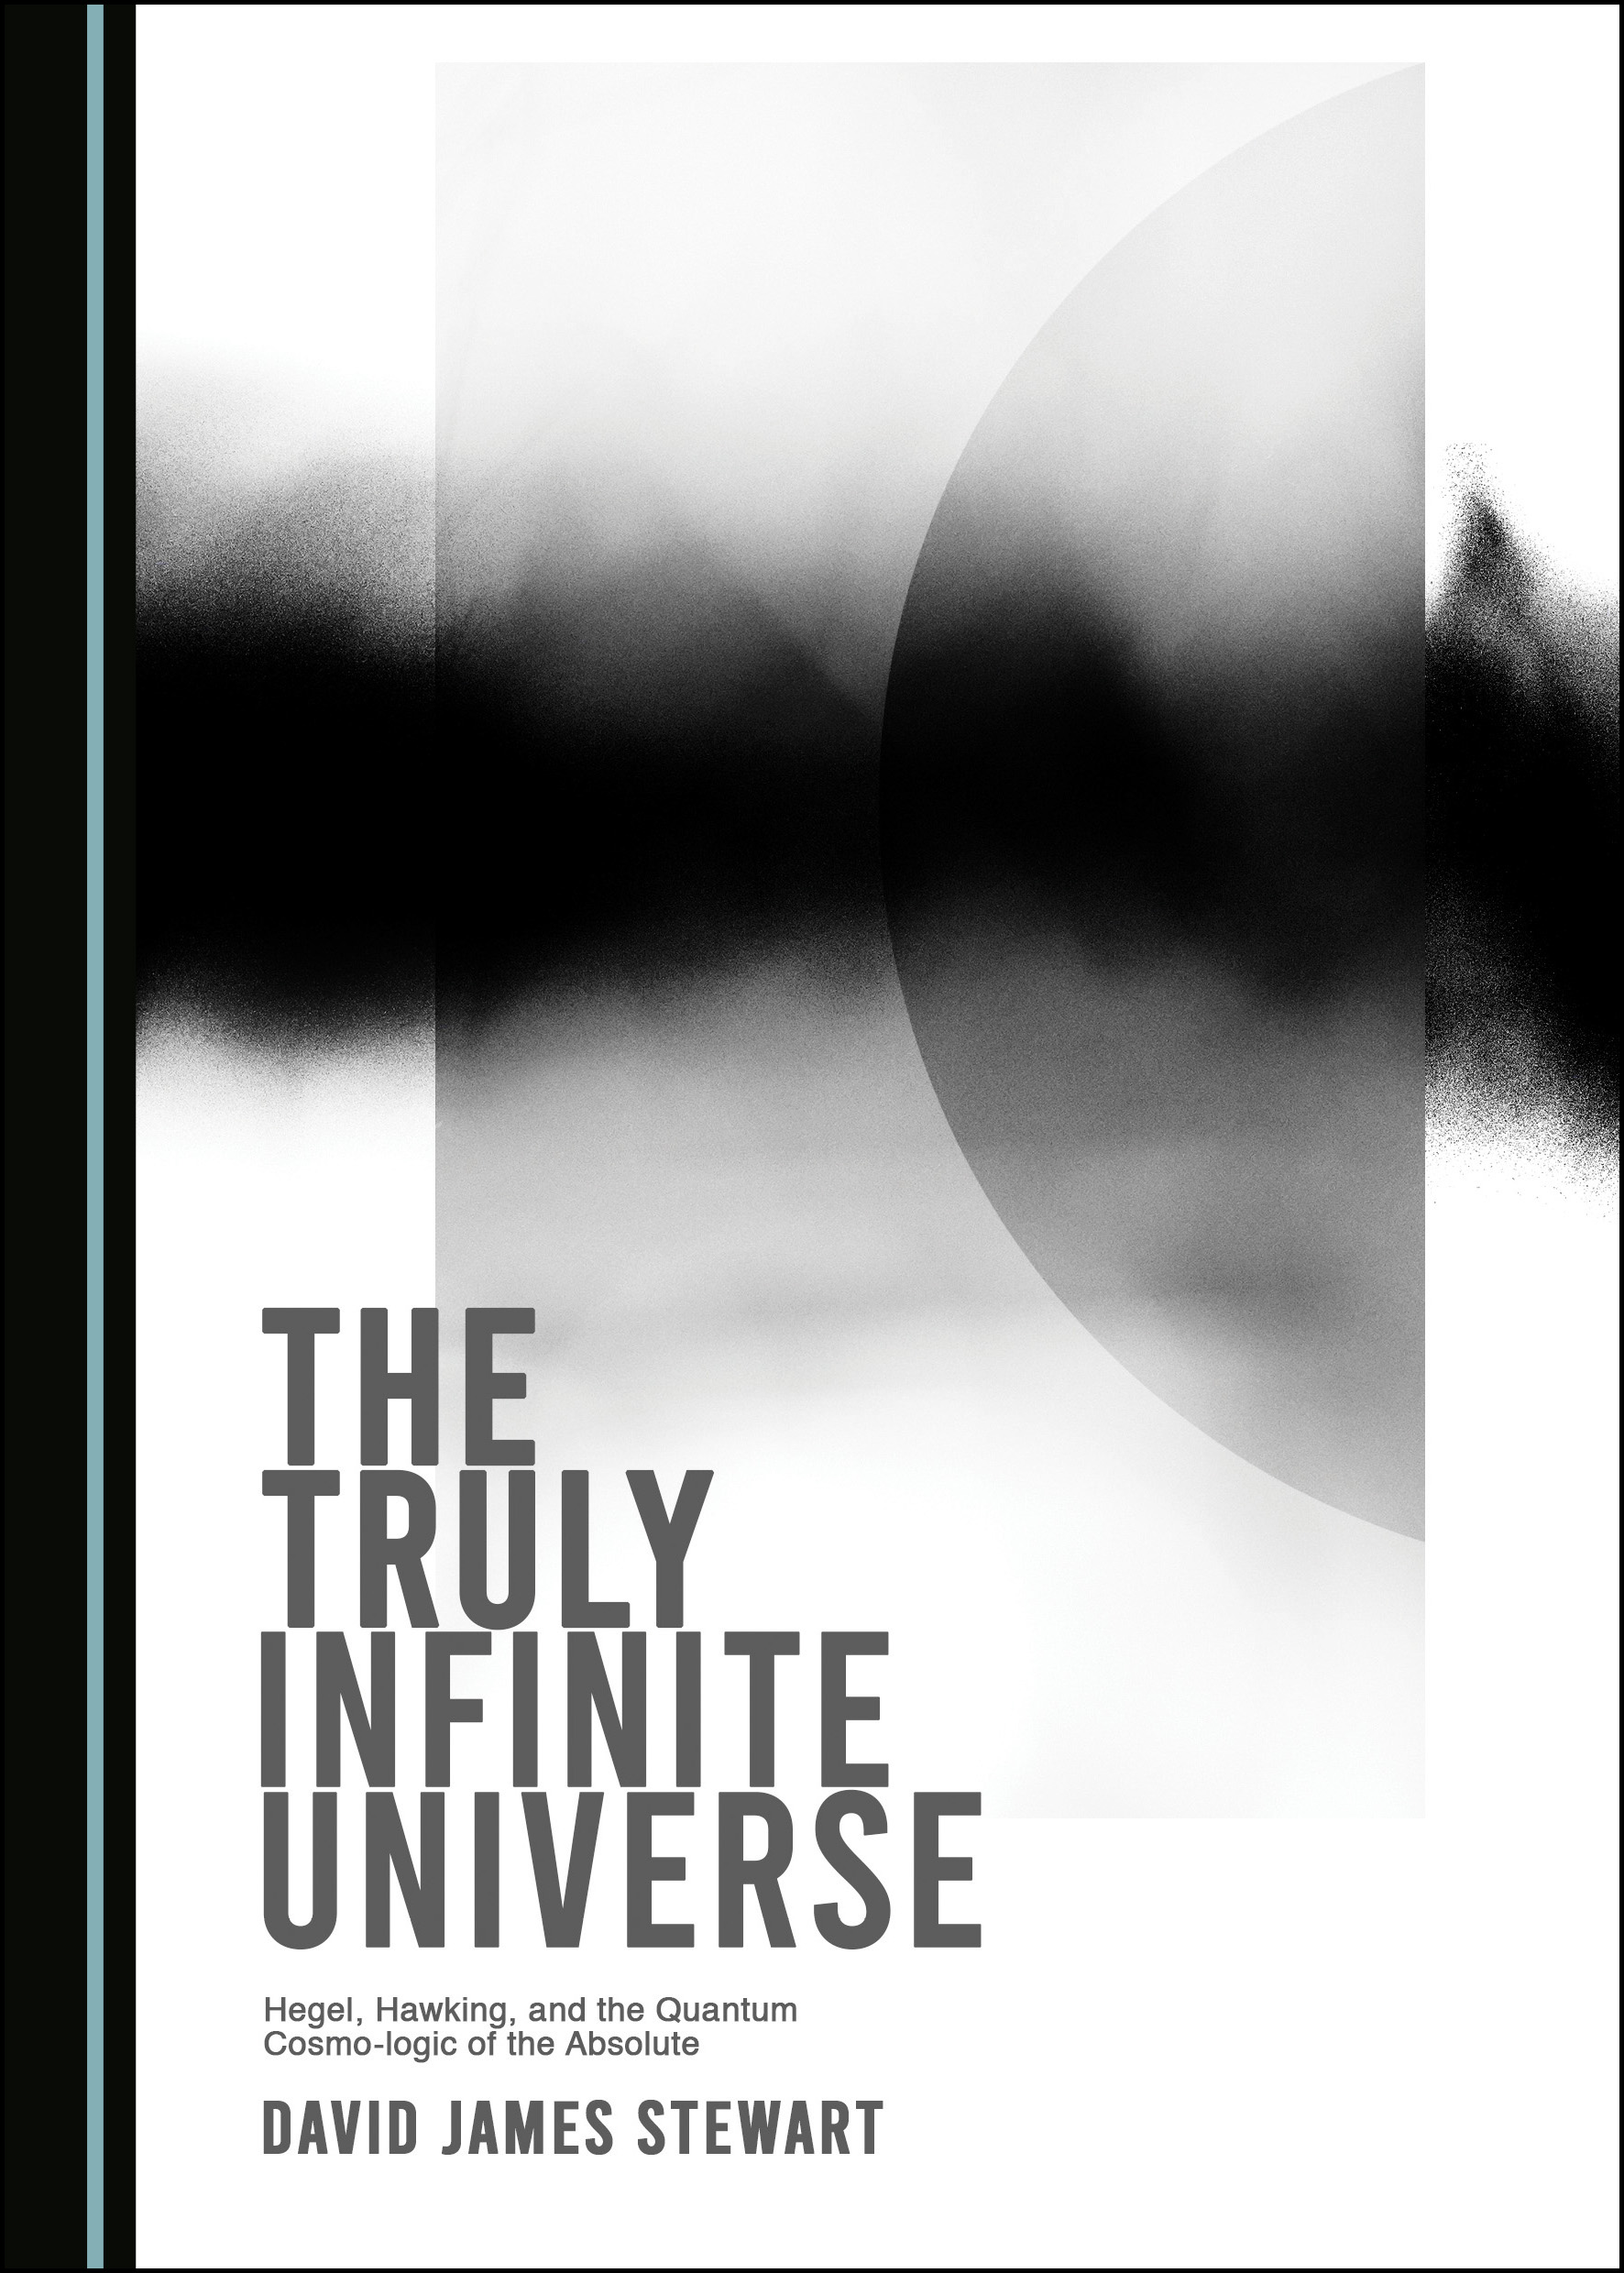 The Truly Infinite Universe: Hegel, Hawking, and the Quantum Cosmo-logic of the Absolute